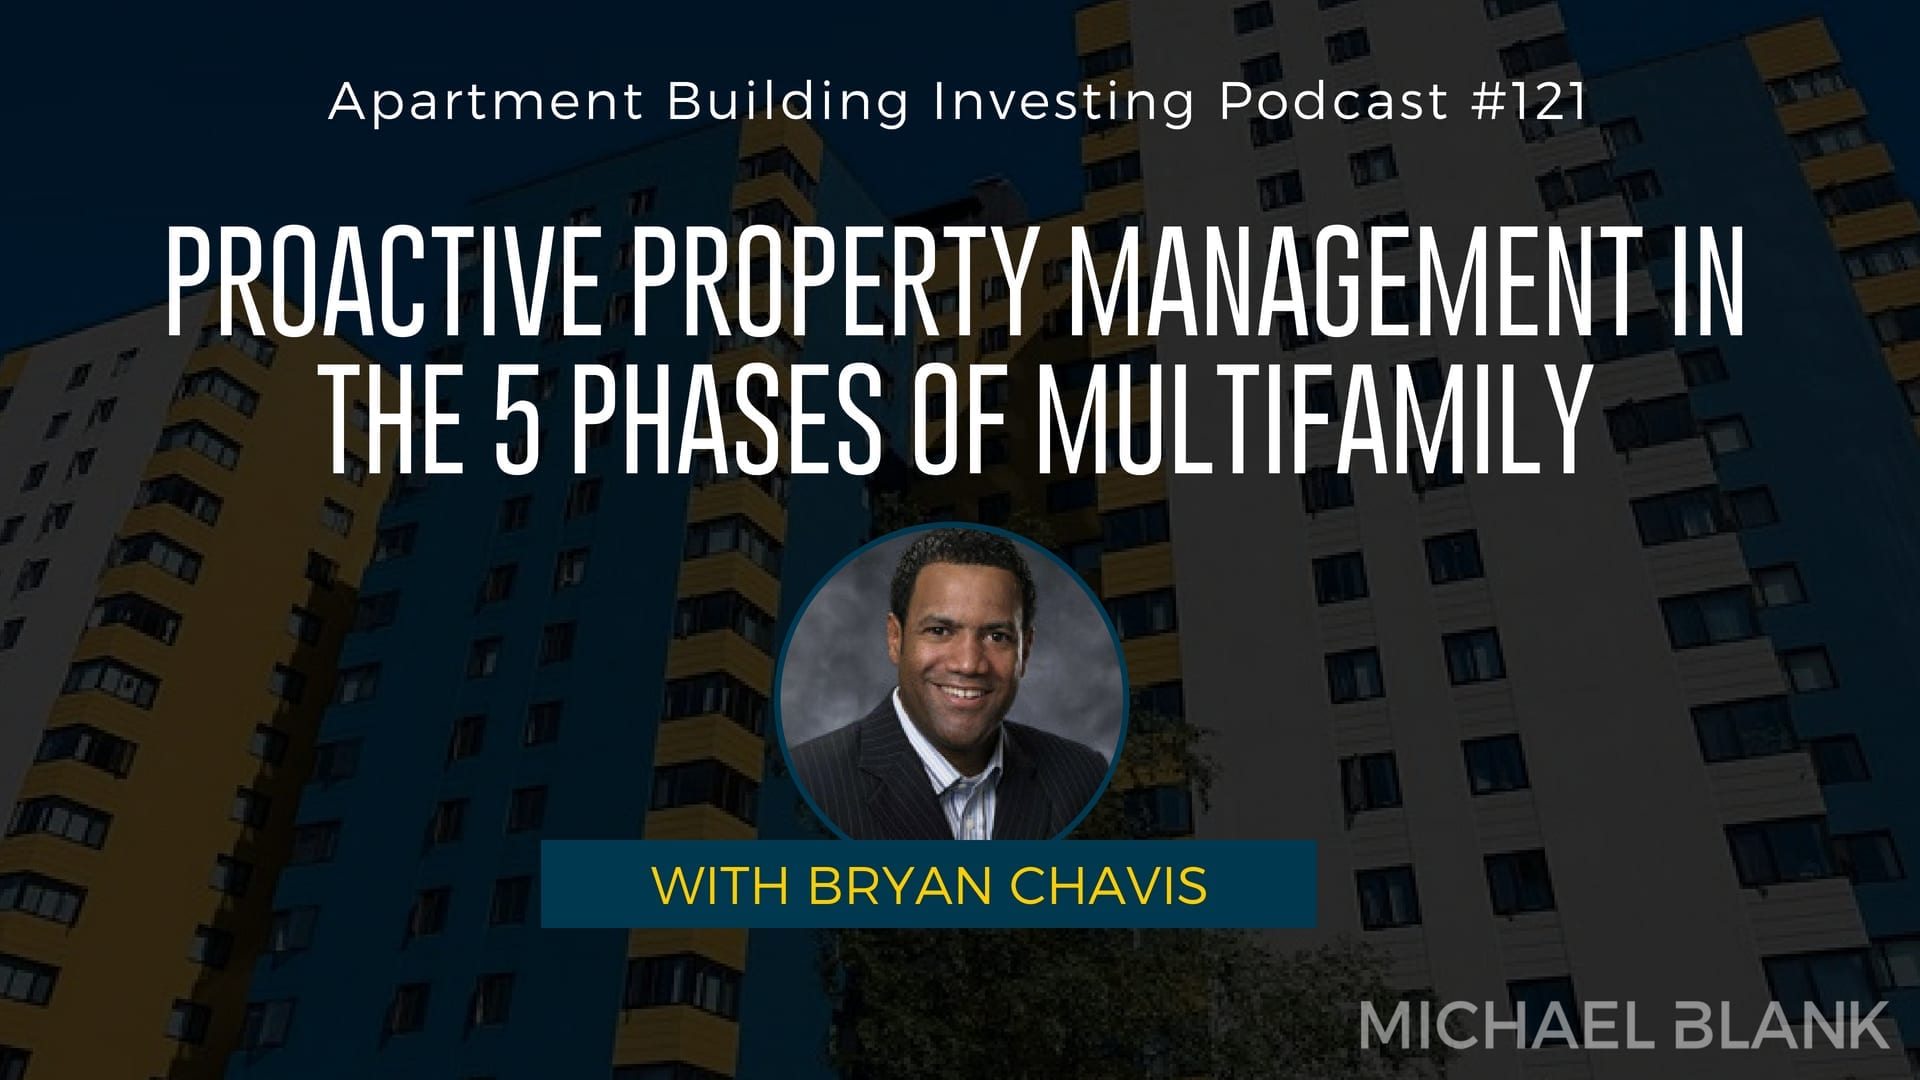 MB 121: Proactive Property Management in the 5 Phases of Multifamily – With Bryan Chavis